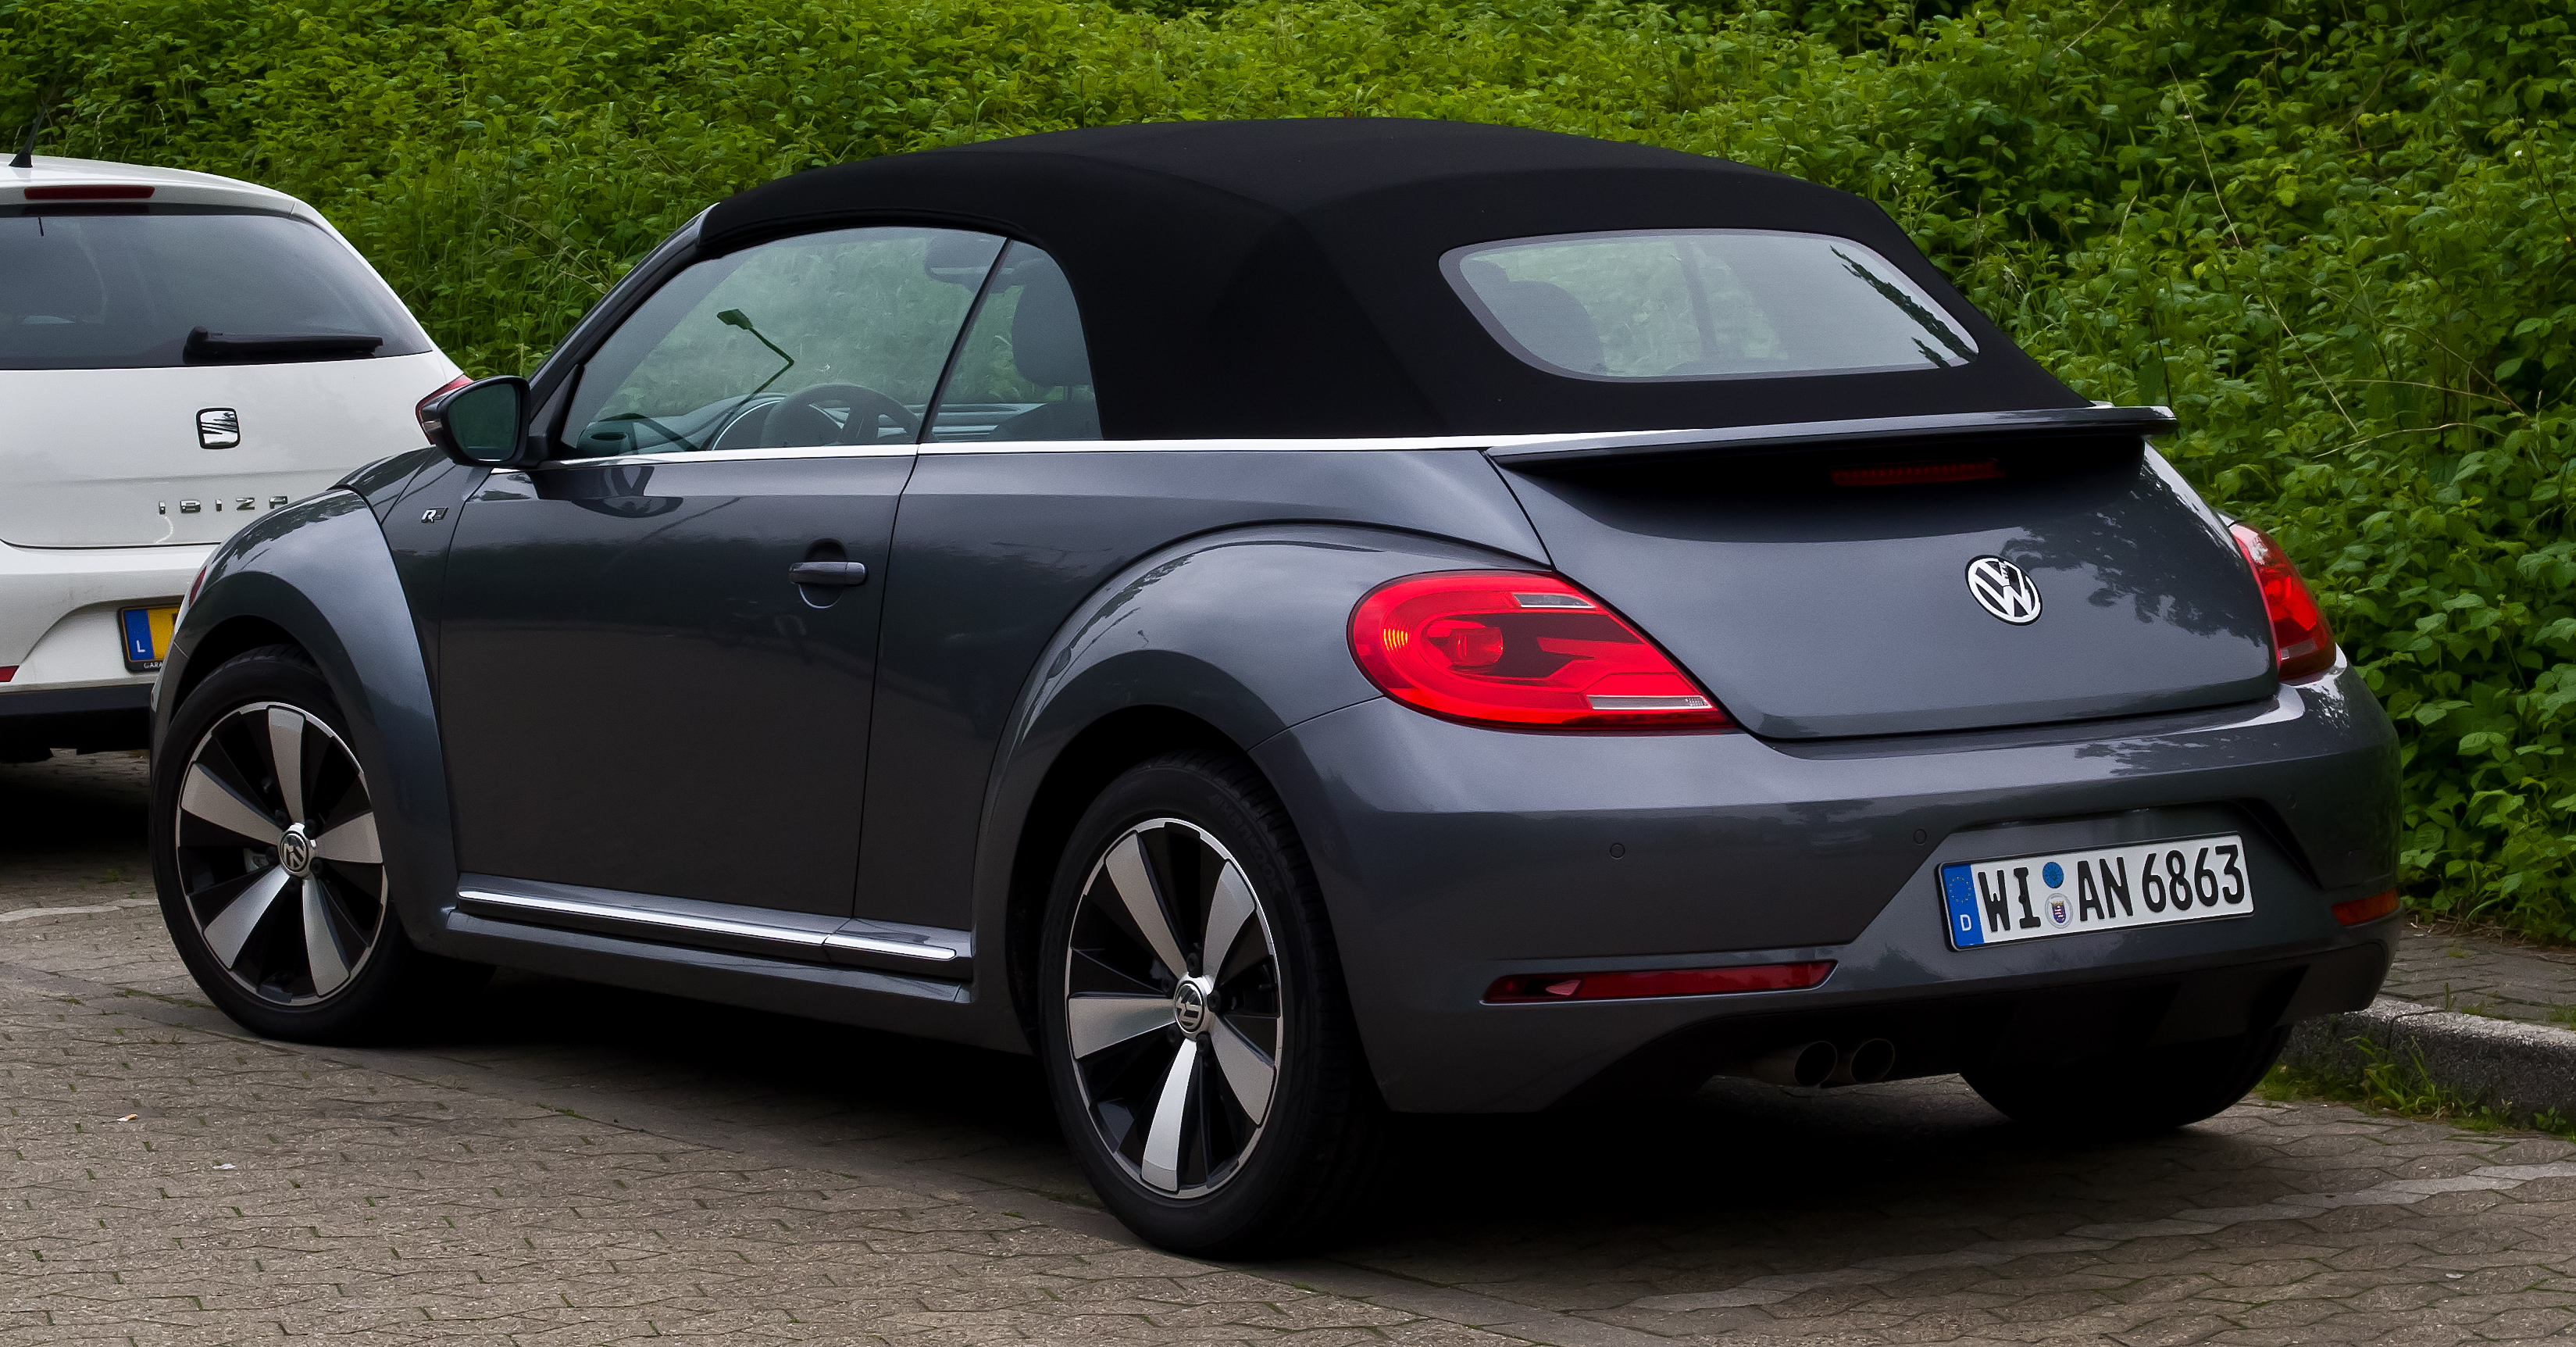 file vw beetle cabriolet 1 4 tsi sport r line ii. Black Bedroom Furniture Sets. Home Design Ideas